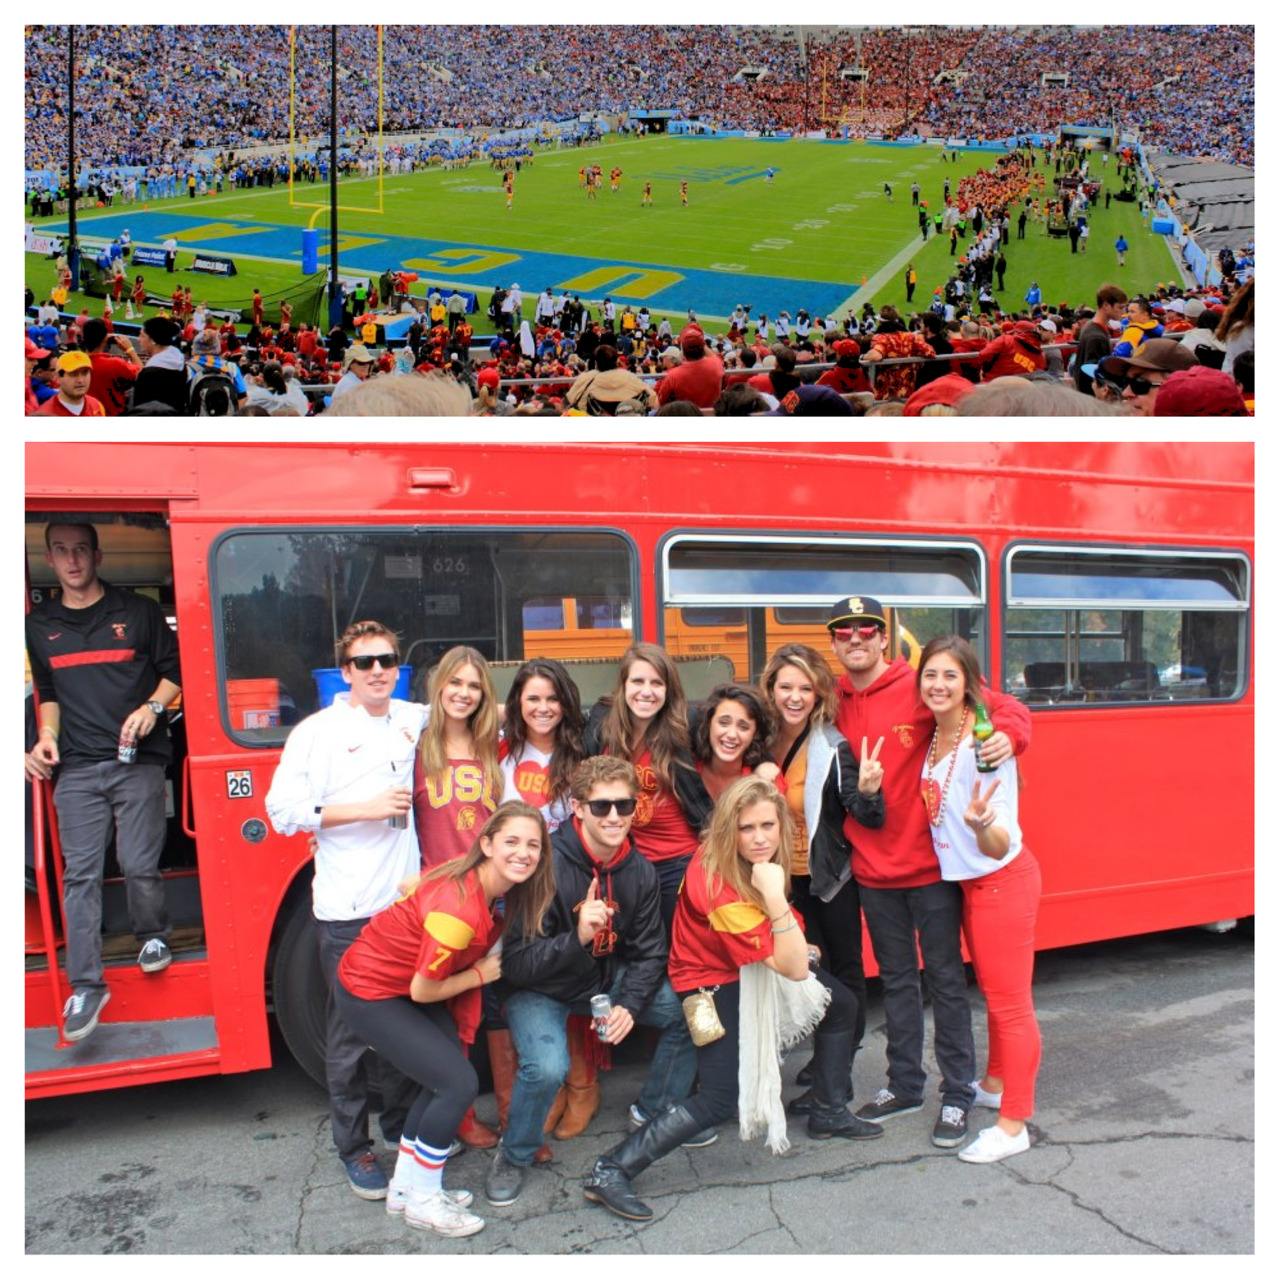 Had a great time at the Rosebowl this weekend!